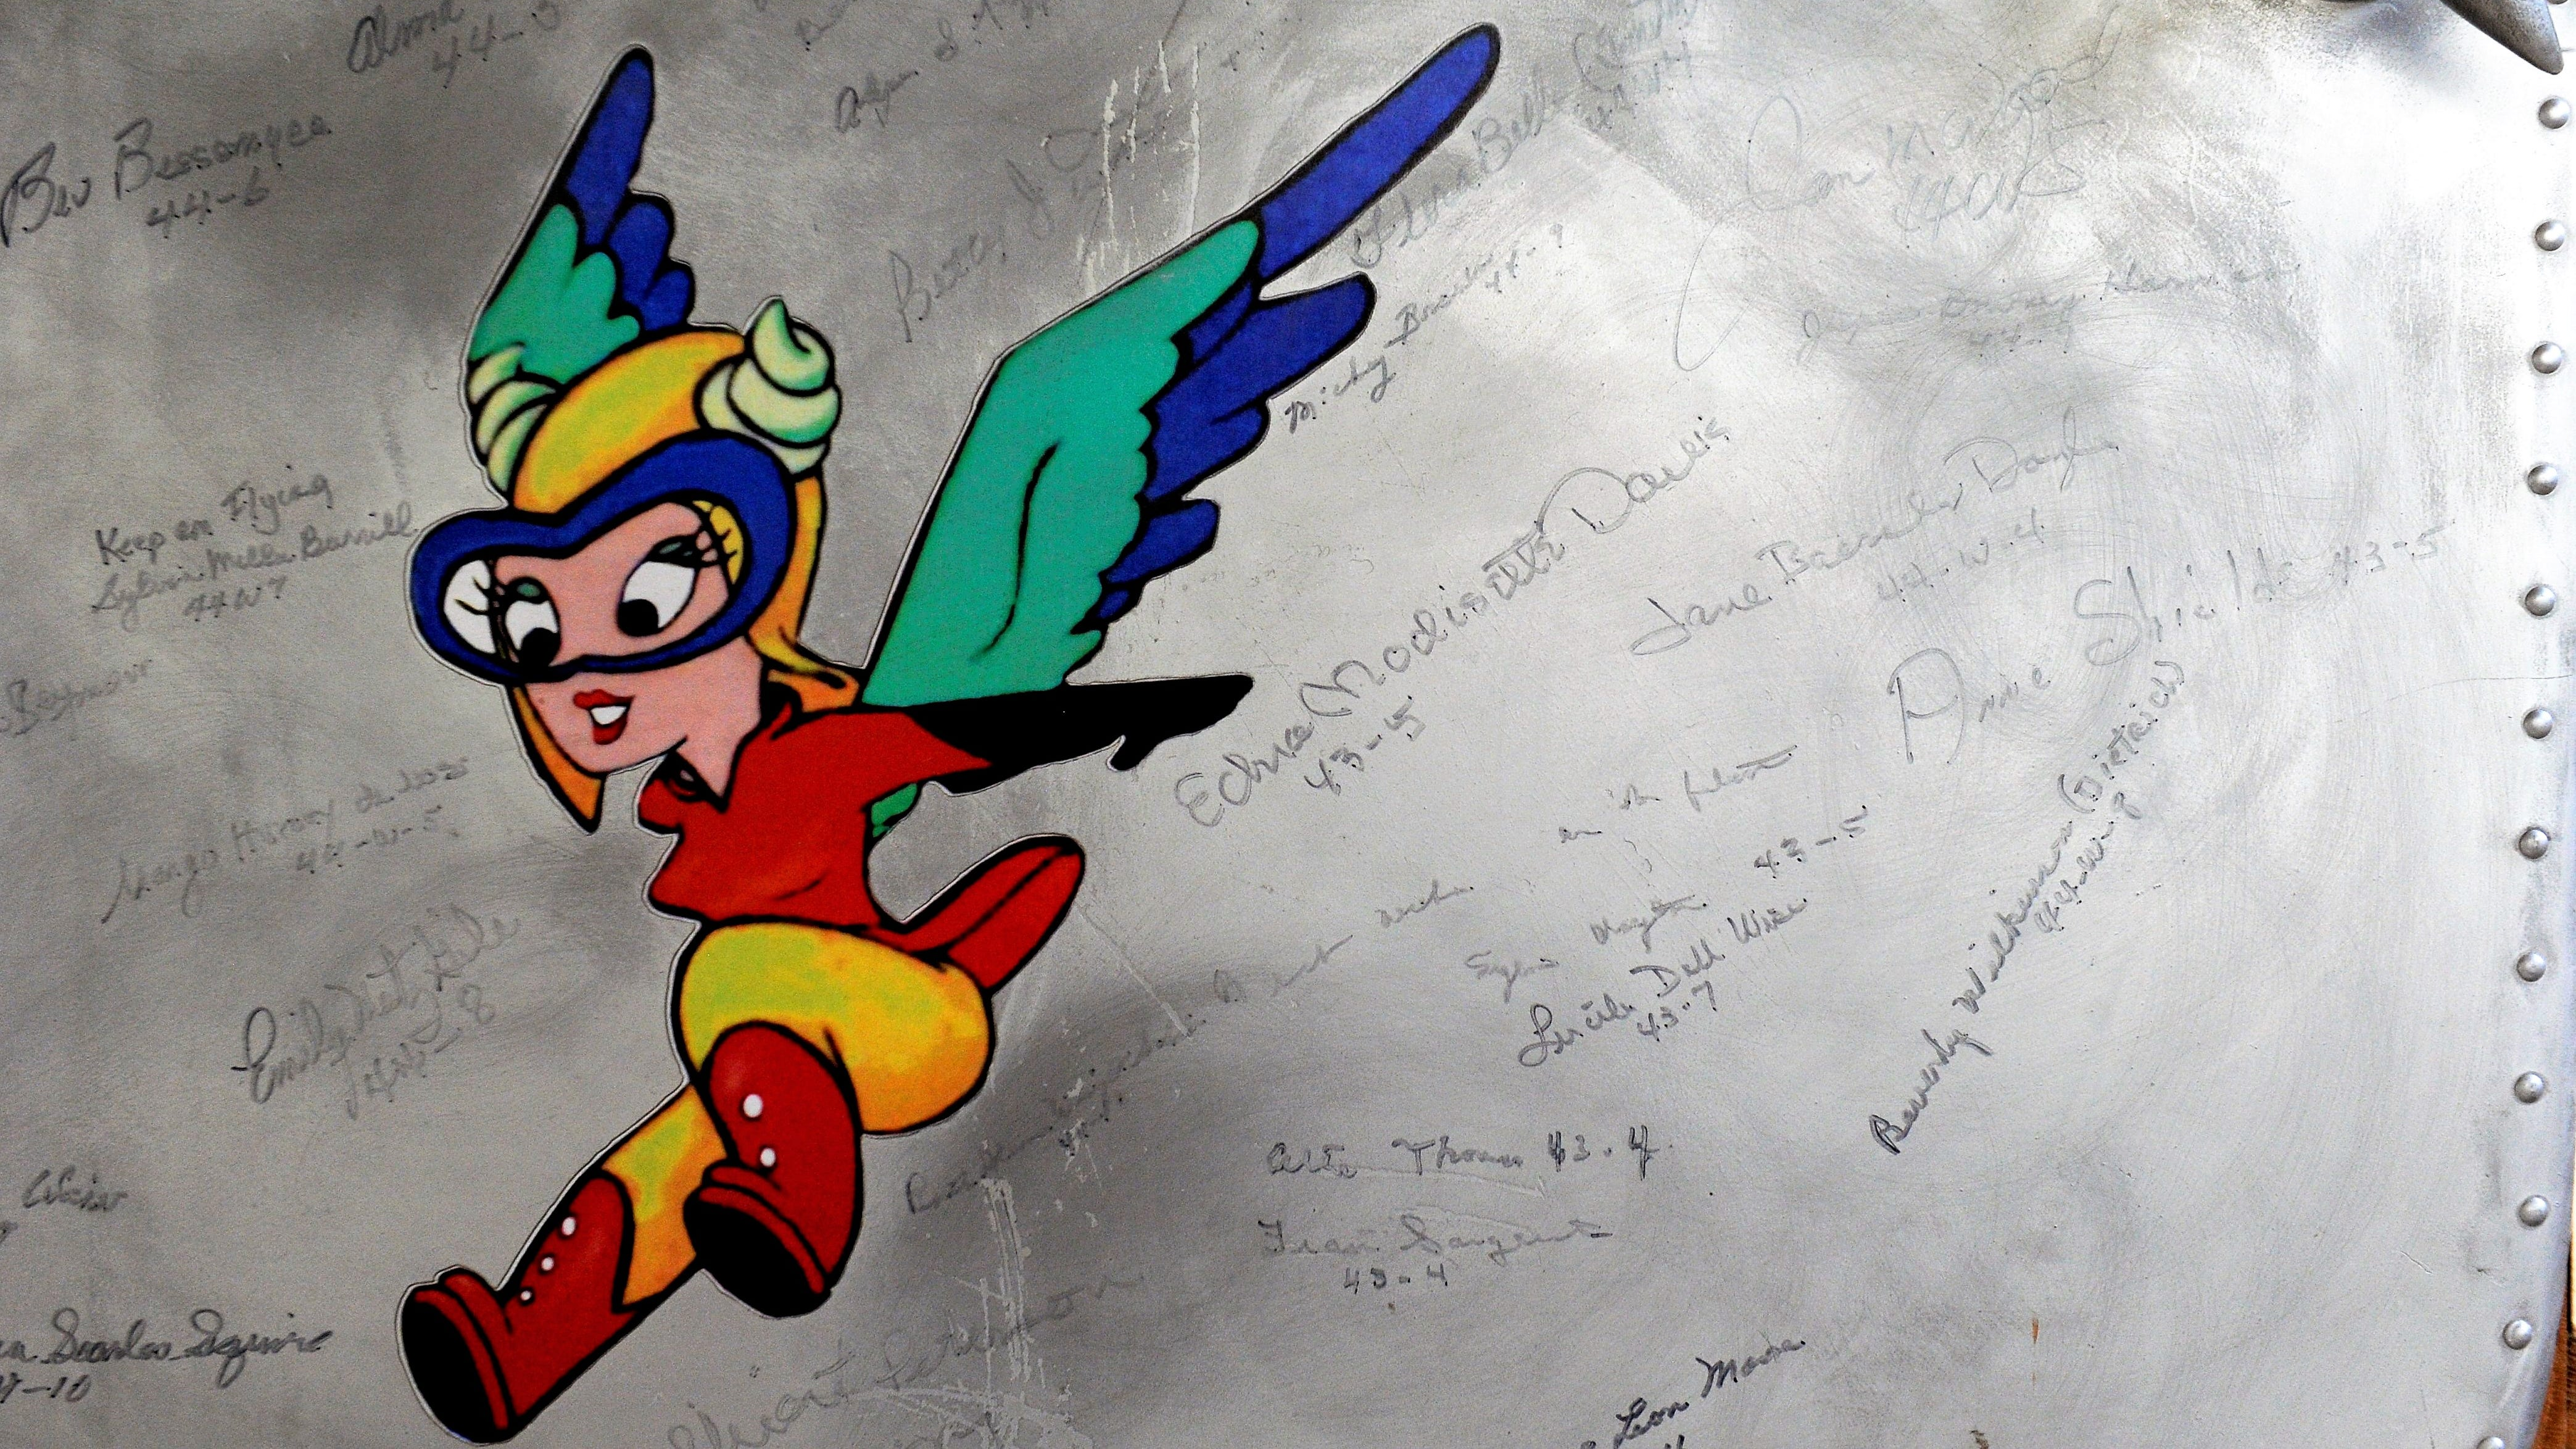 Signatures of past WASPs decorate an aluminum aircraft door around an image of Fifinella, the mascot for the Women's Airforce Service Pilots.